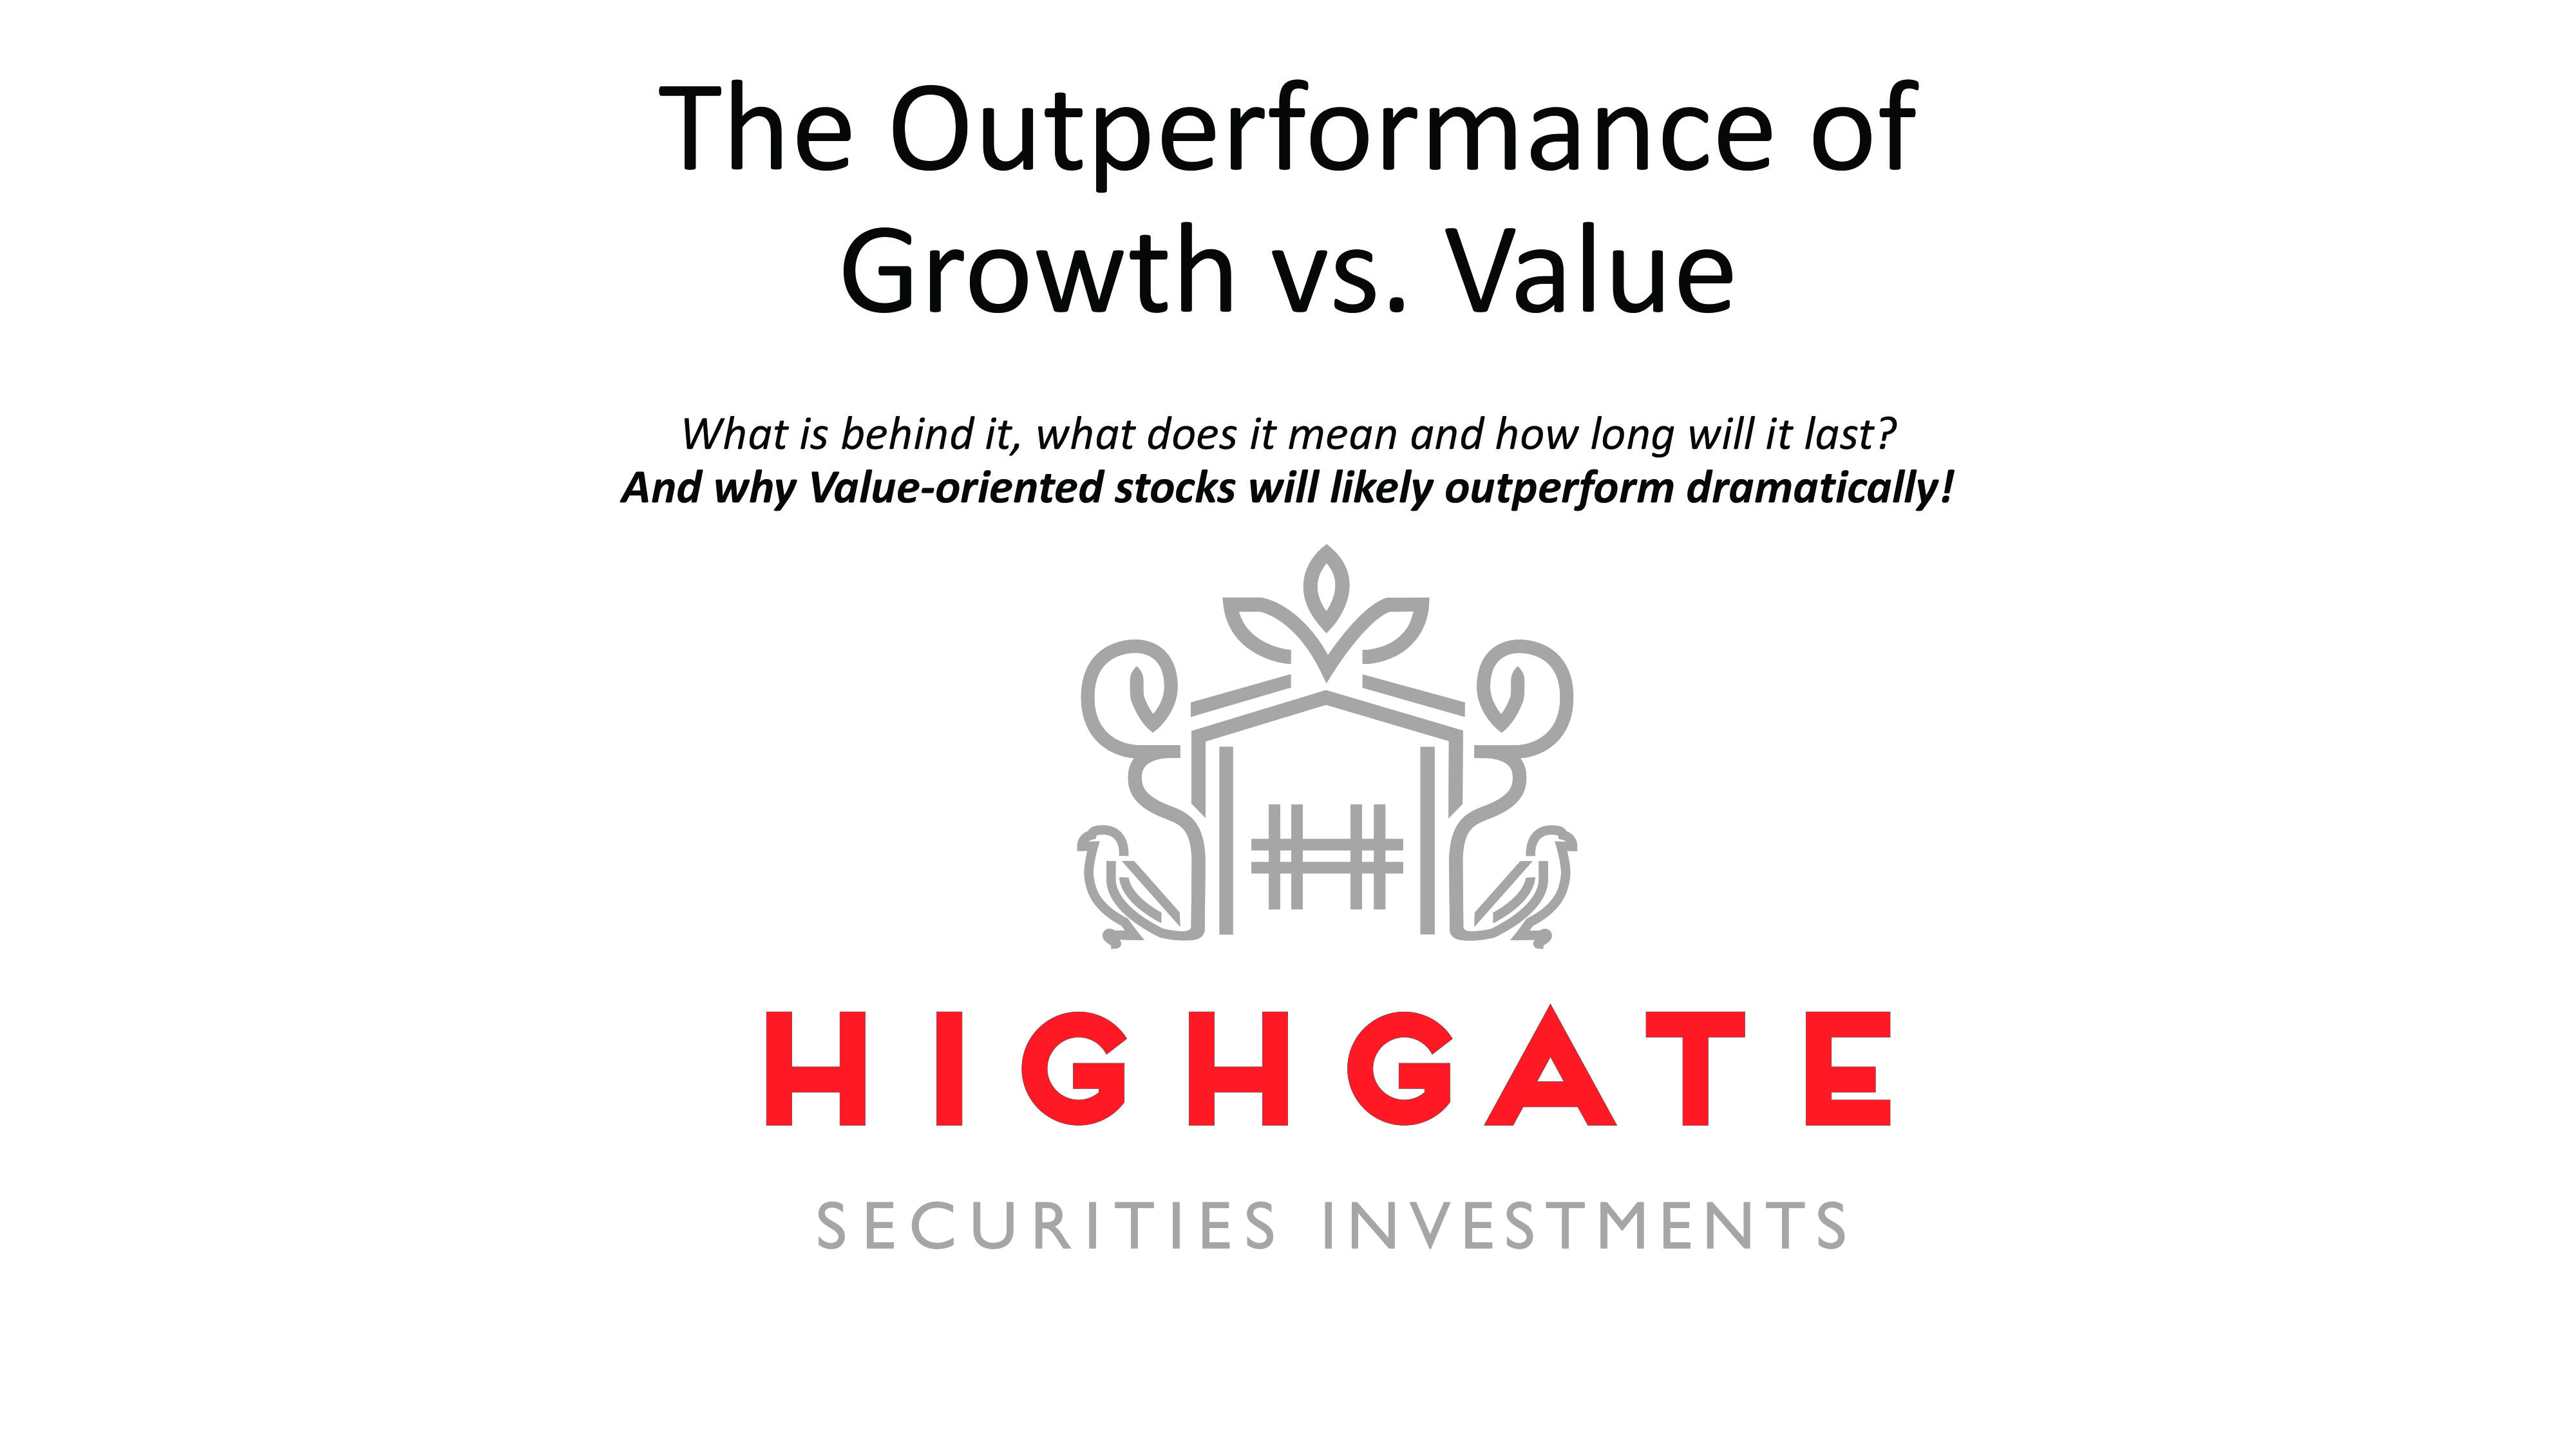 The Outperformance of Growth vs. Value